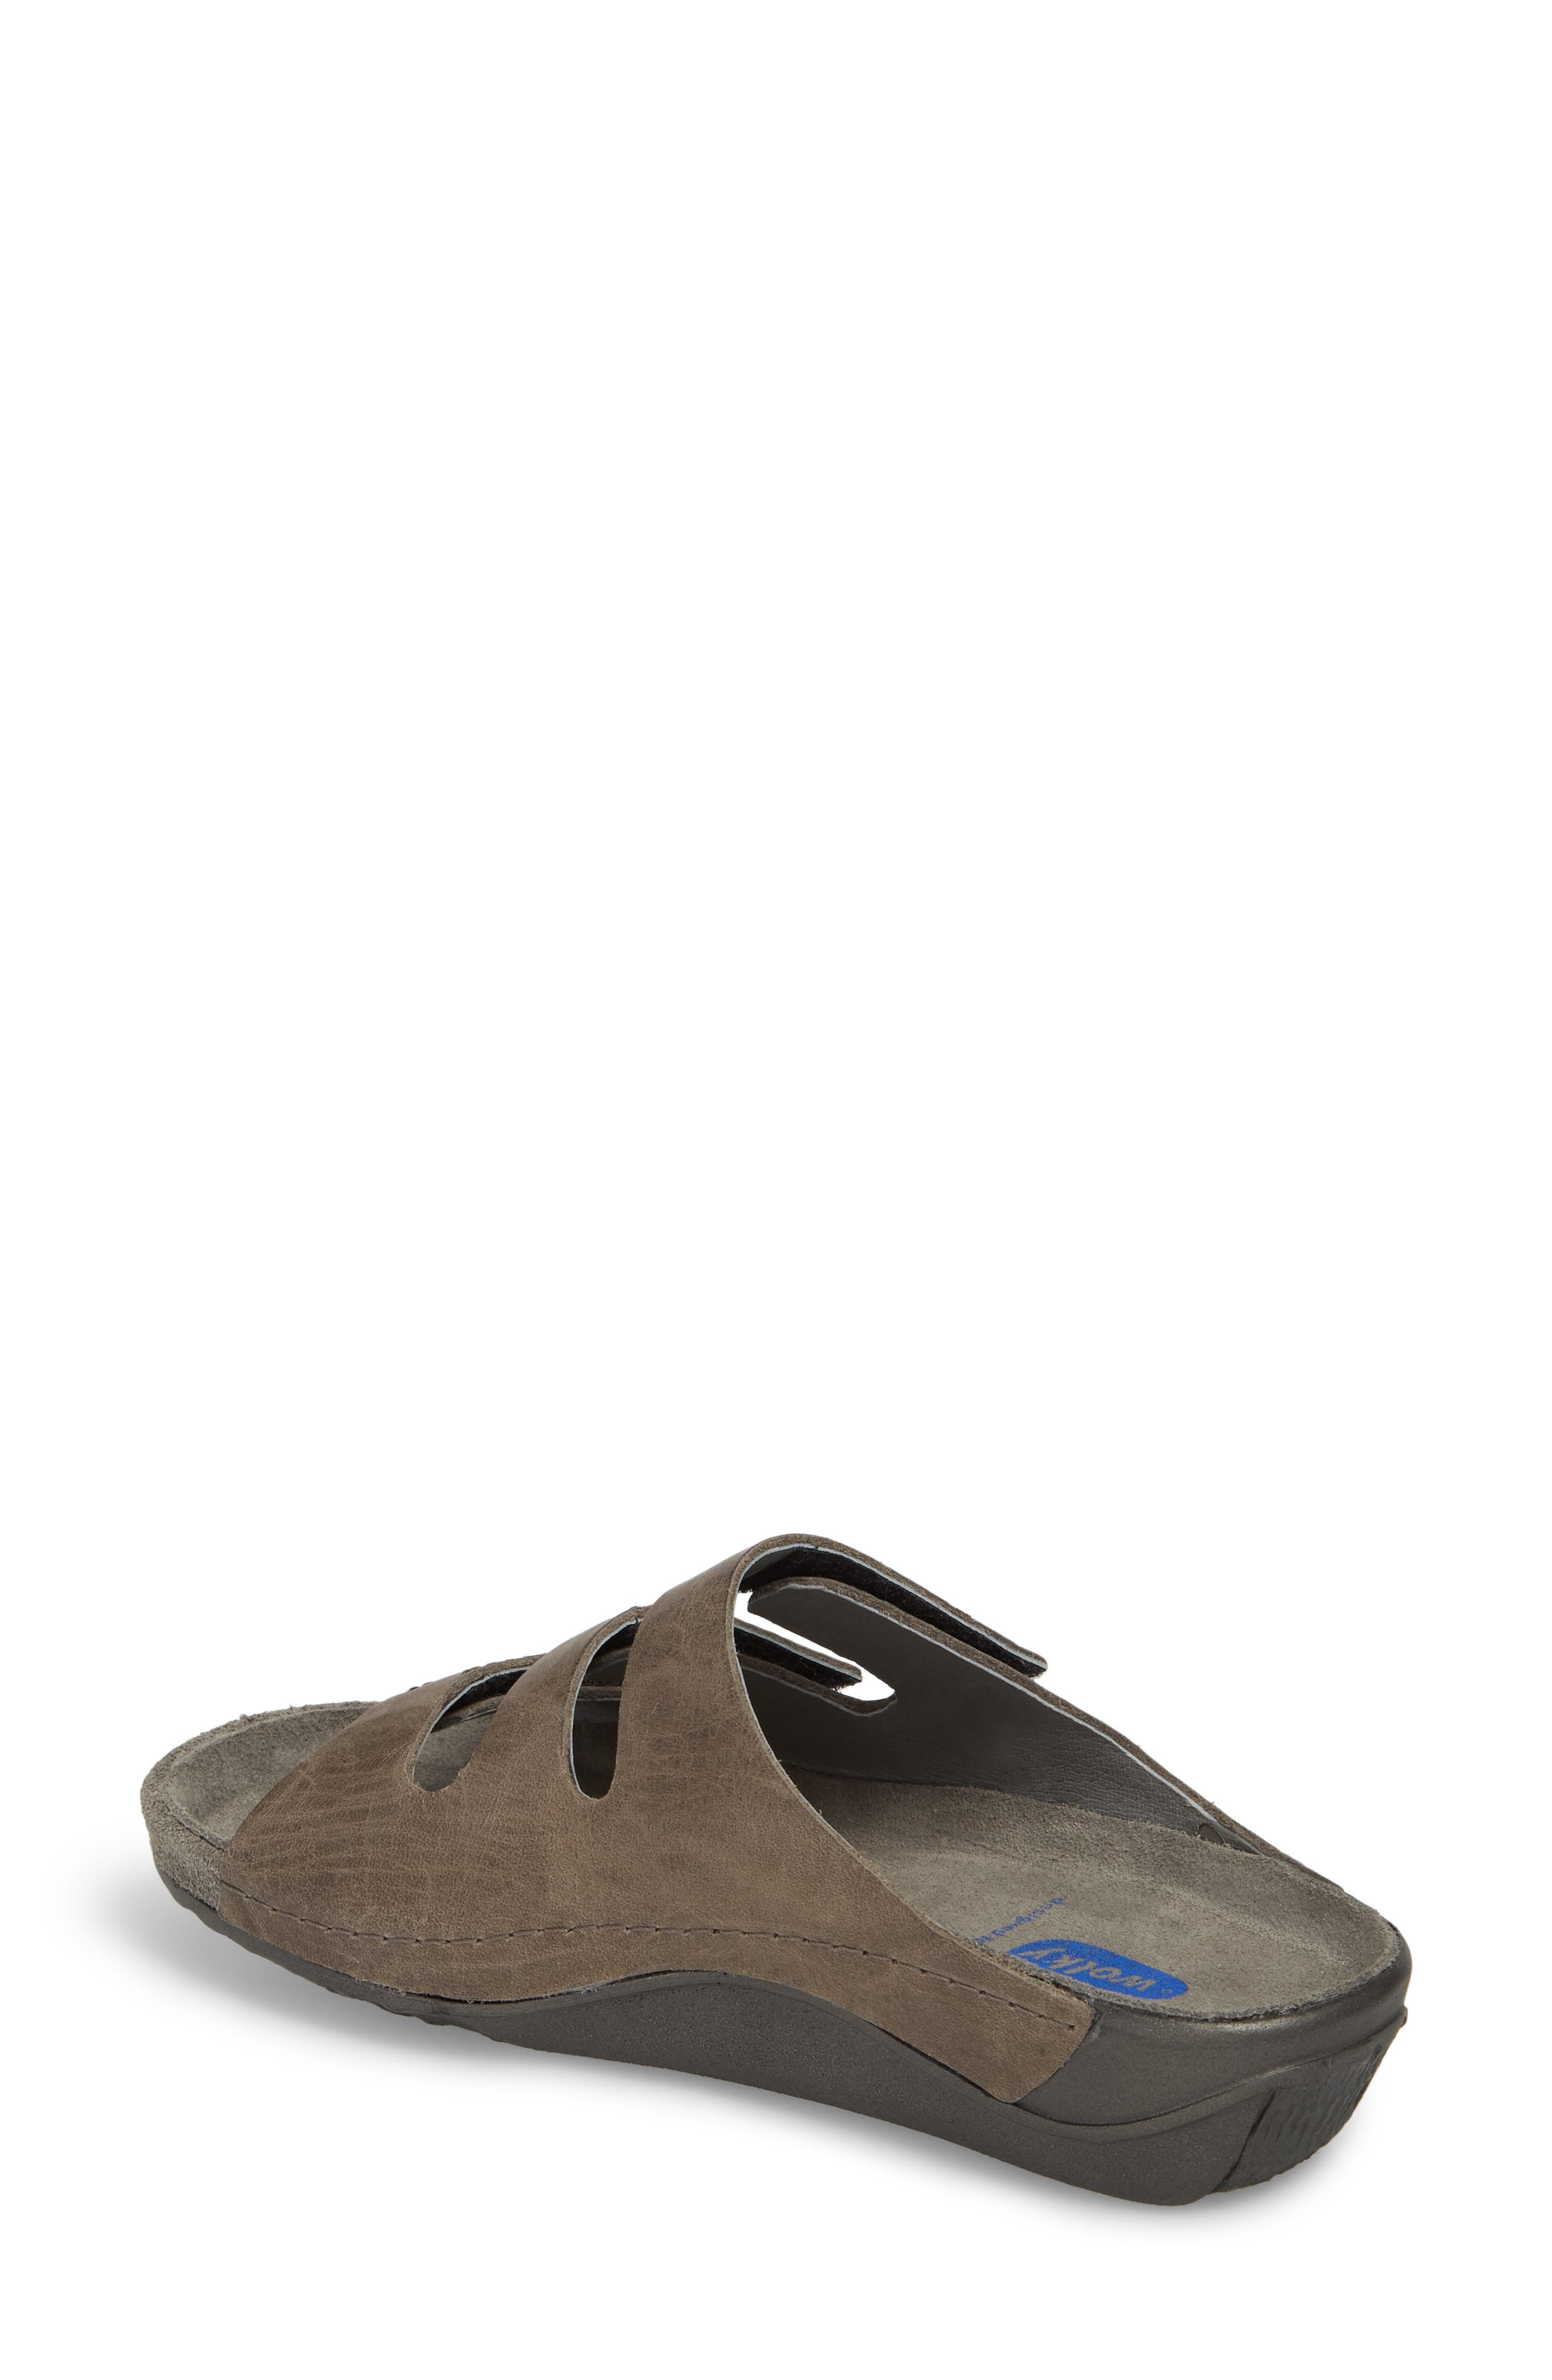 Nomad Slide Sandal,                             Alternate thumbnail 2, color,                             SLATE LEATHER